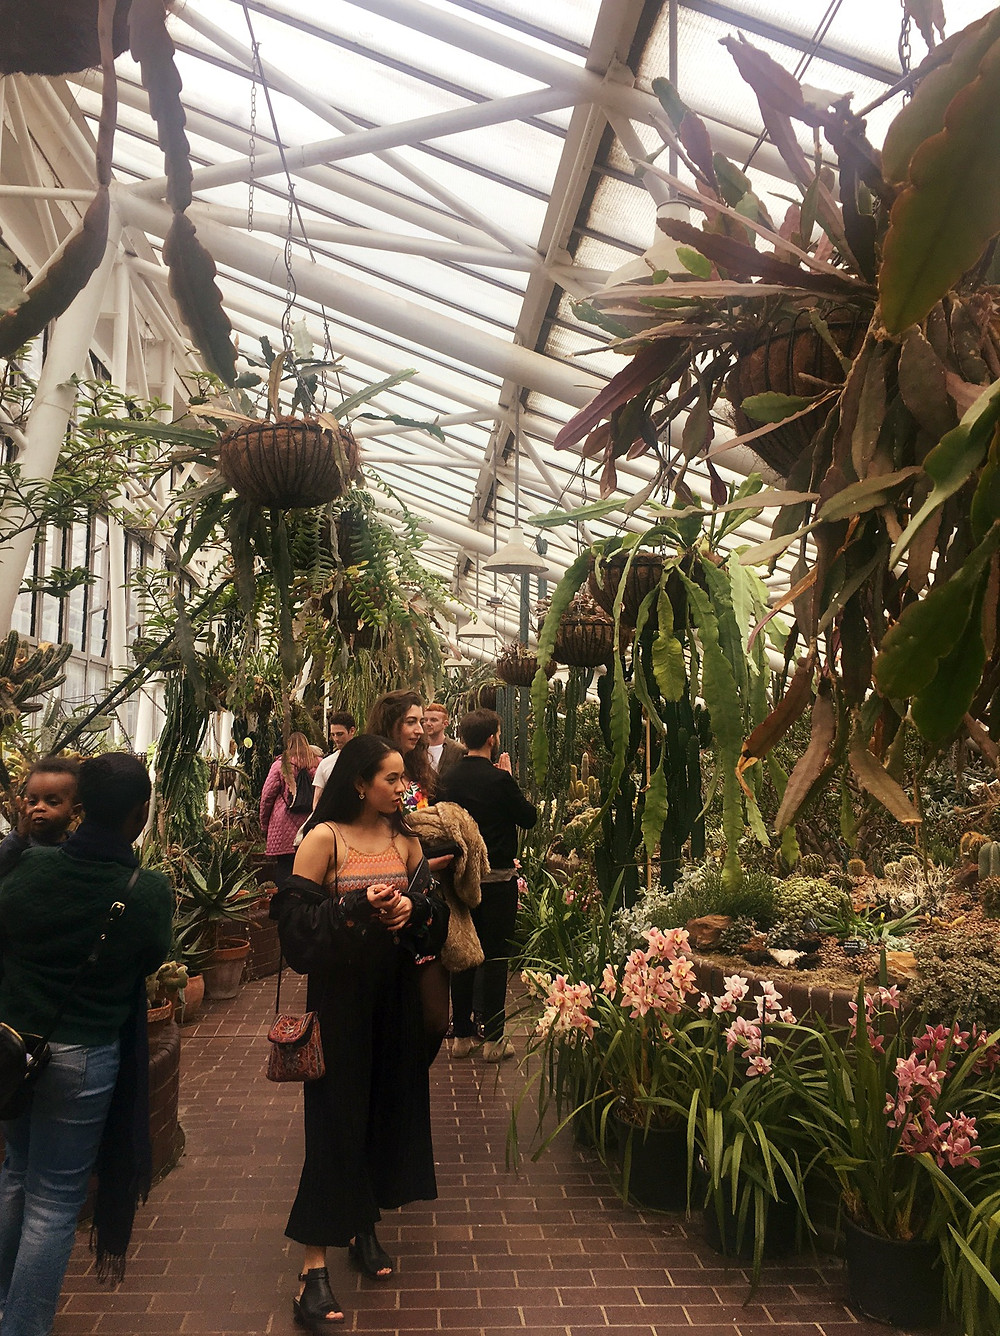 The Cactus enclosure of the Barbican Conservatory